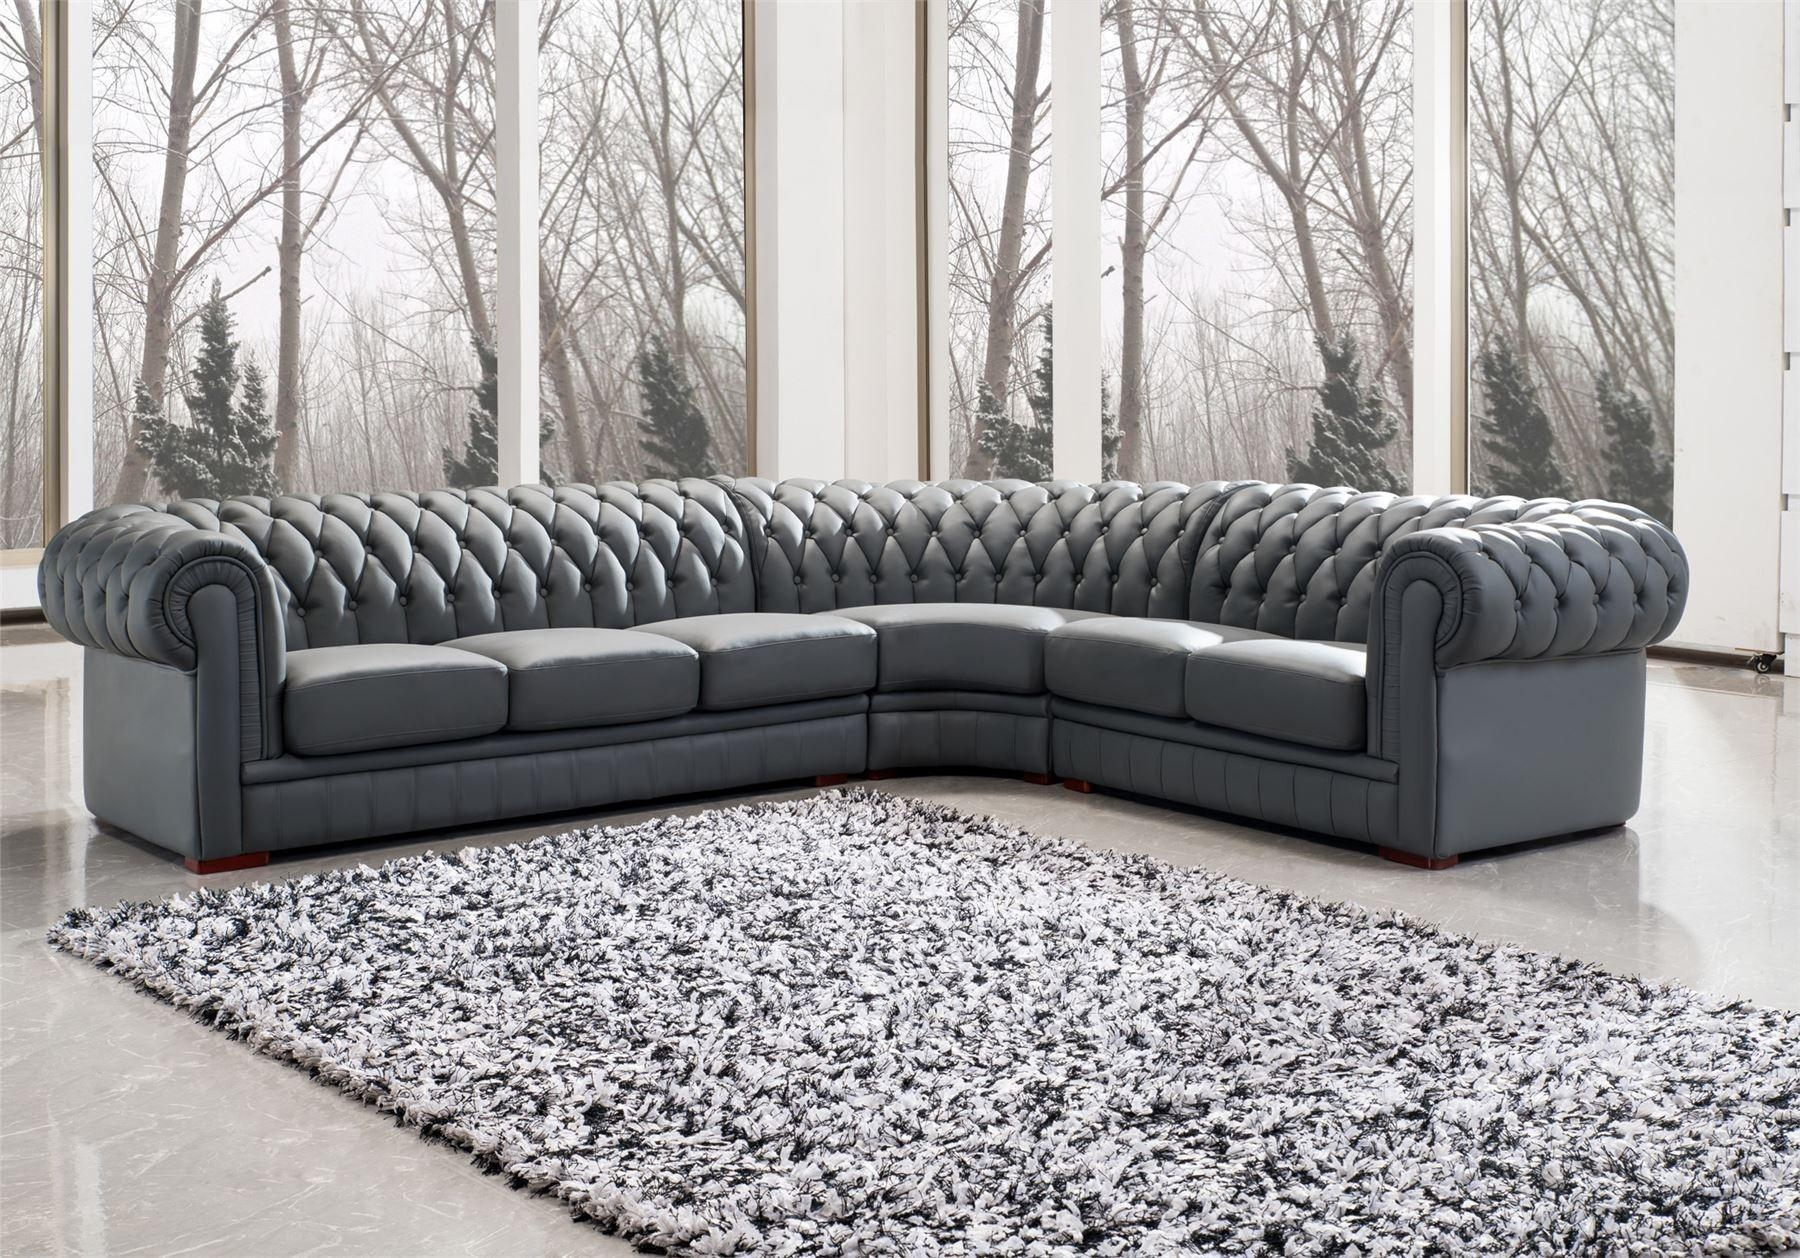 L Shape Gray Leather Sectional Sofa With Back And Arm Rest Placed Inside Gray Leather Sectional Sofas (Image 16 of 21)